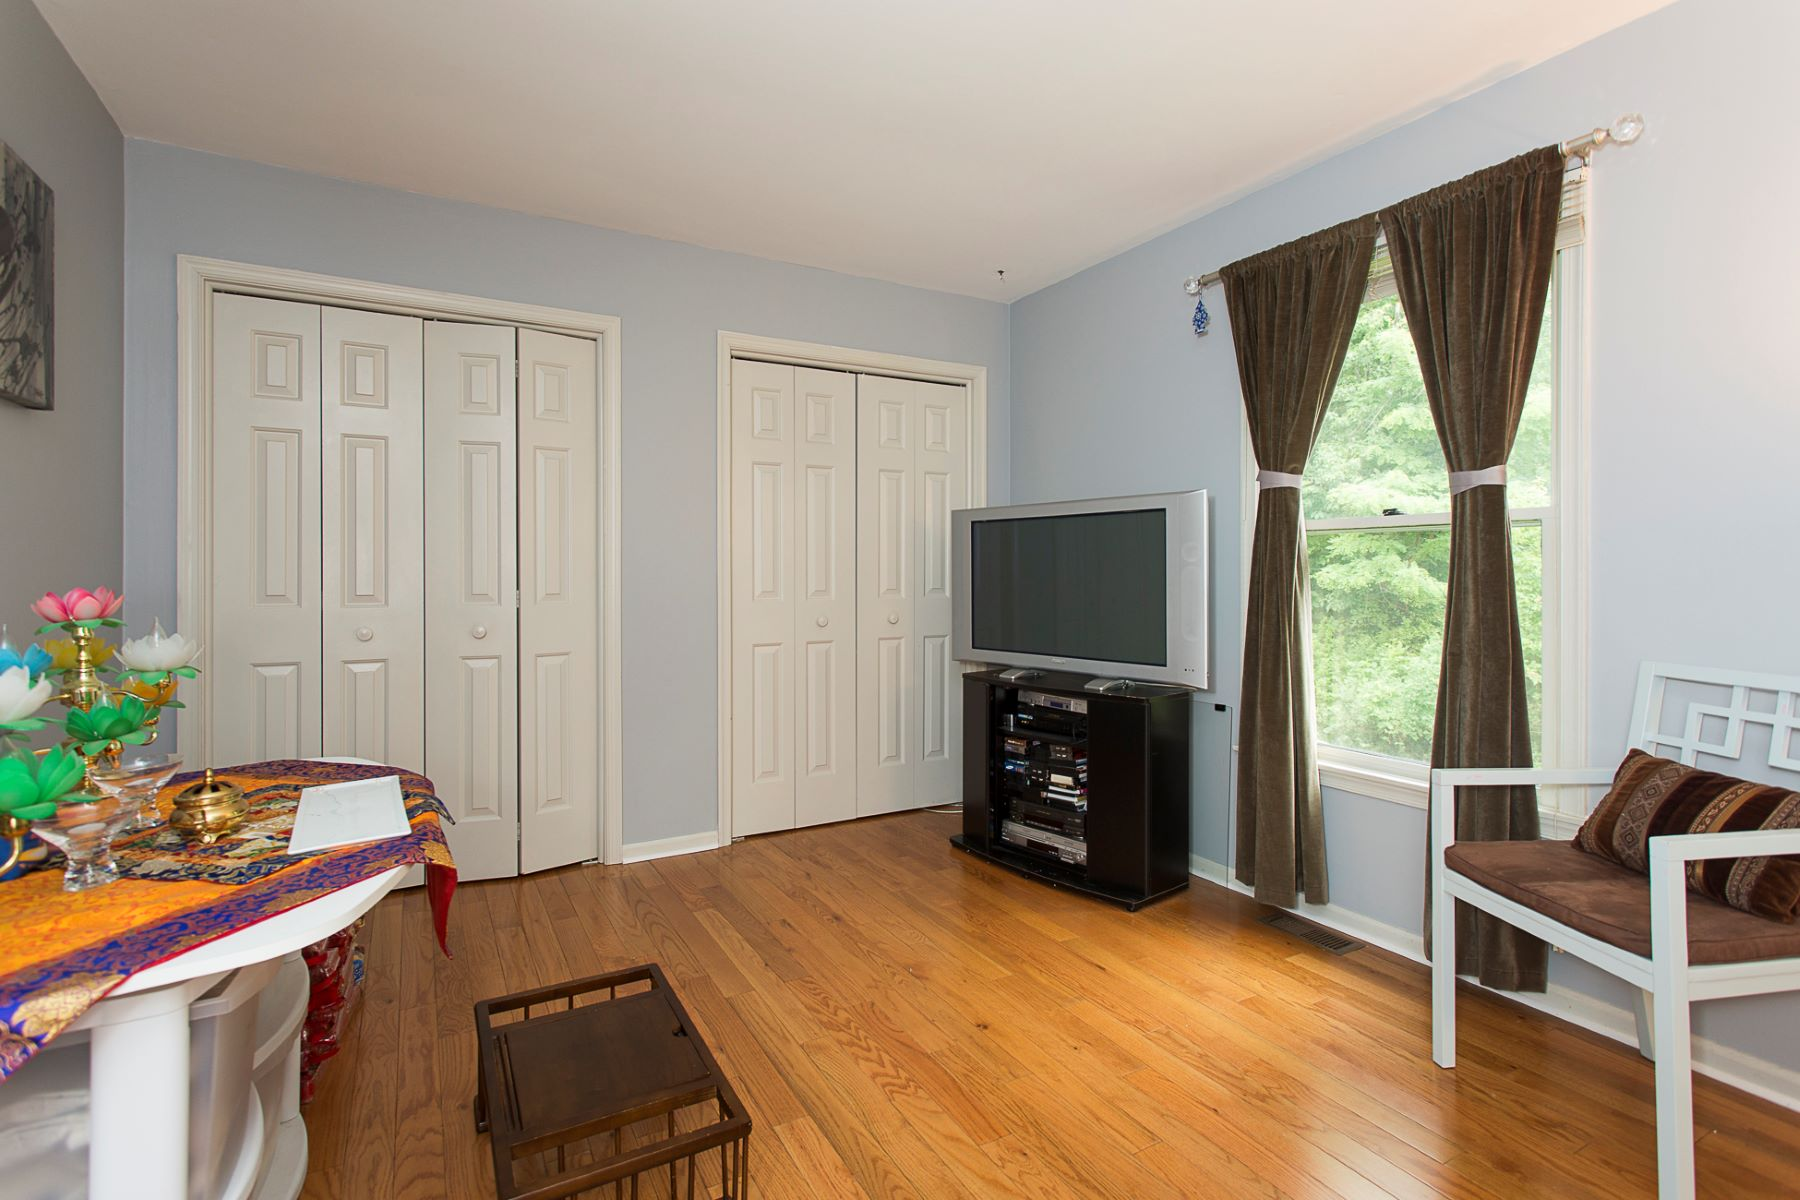 Additional photo for property listing at A Most Elegant Host and Haven in Kingsbrook 6 Registry Road, Lawrenceville, New Jersey 08648 United States